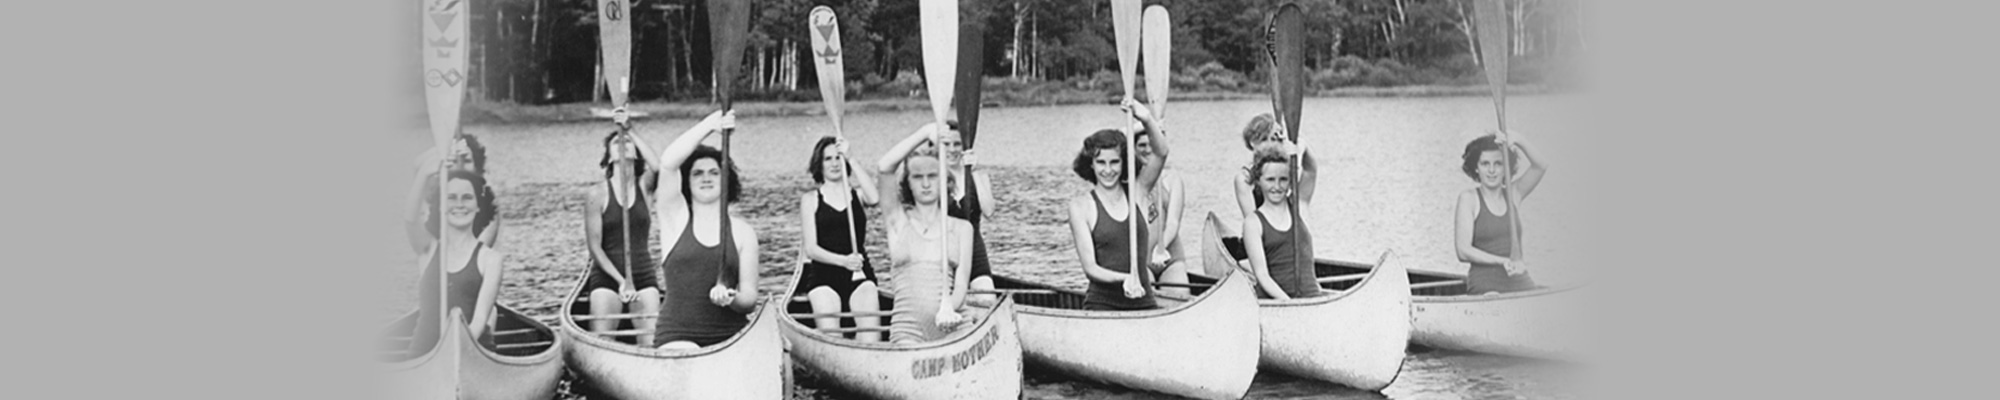 Twelve girls in canoes raising paddles vertically on the waterfront